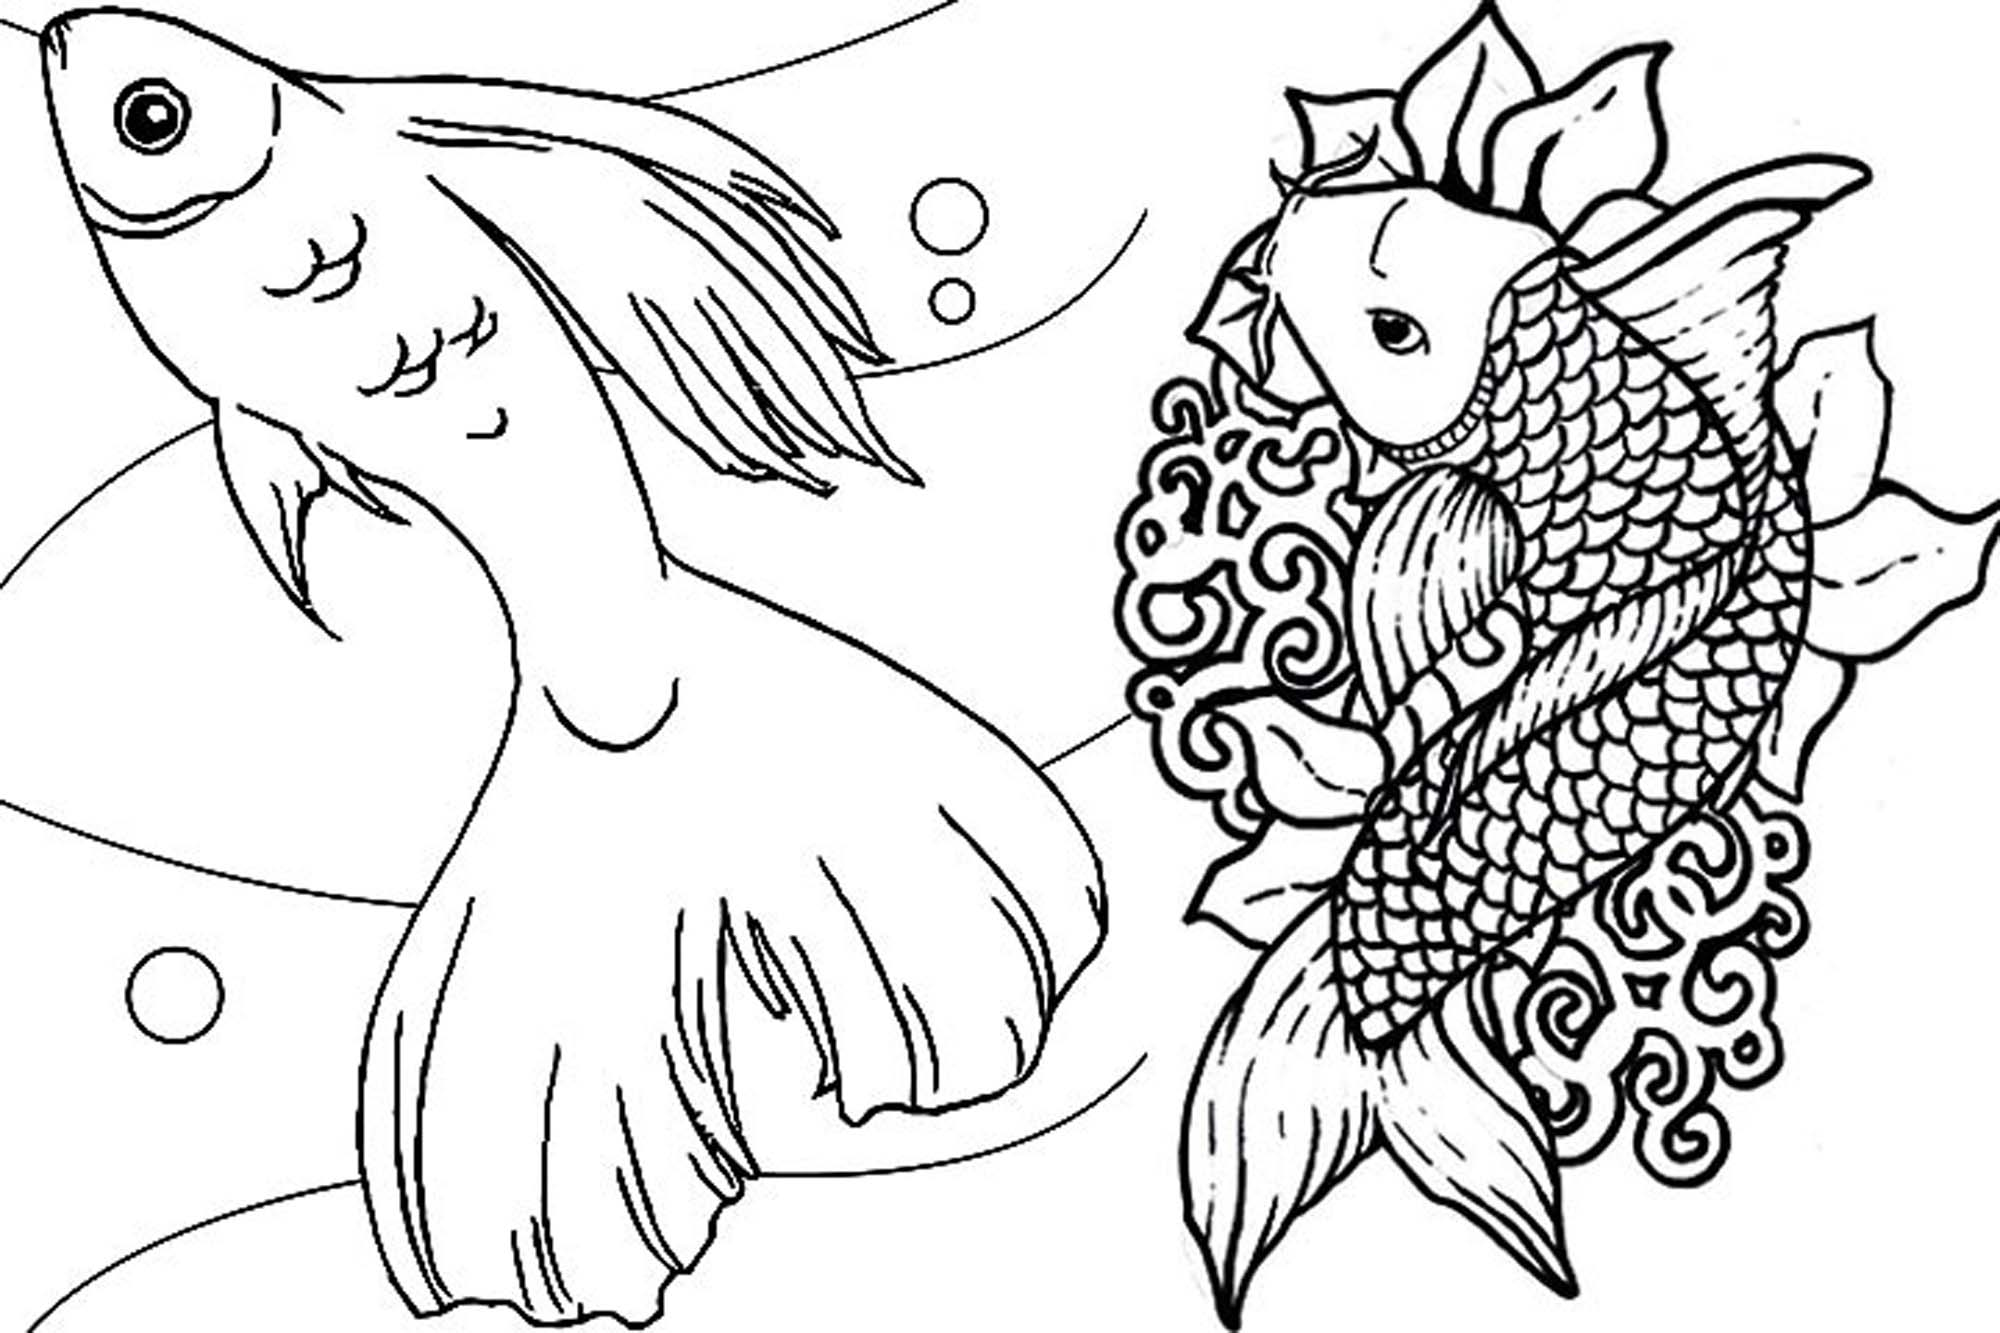 fish coloring pages for adults - Coloring Page Of Fish